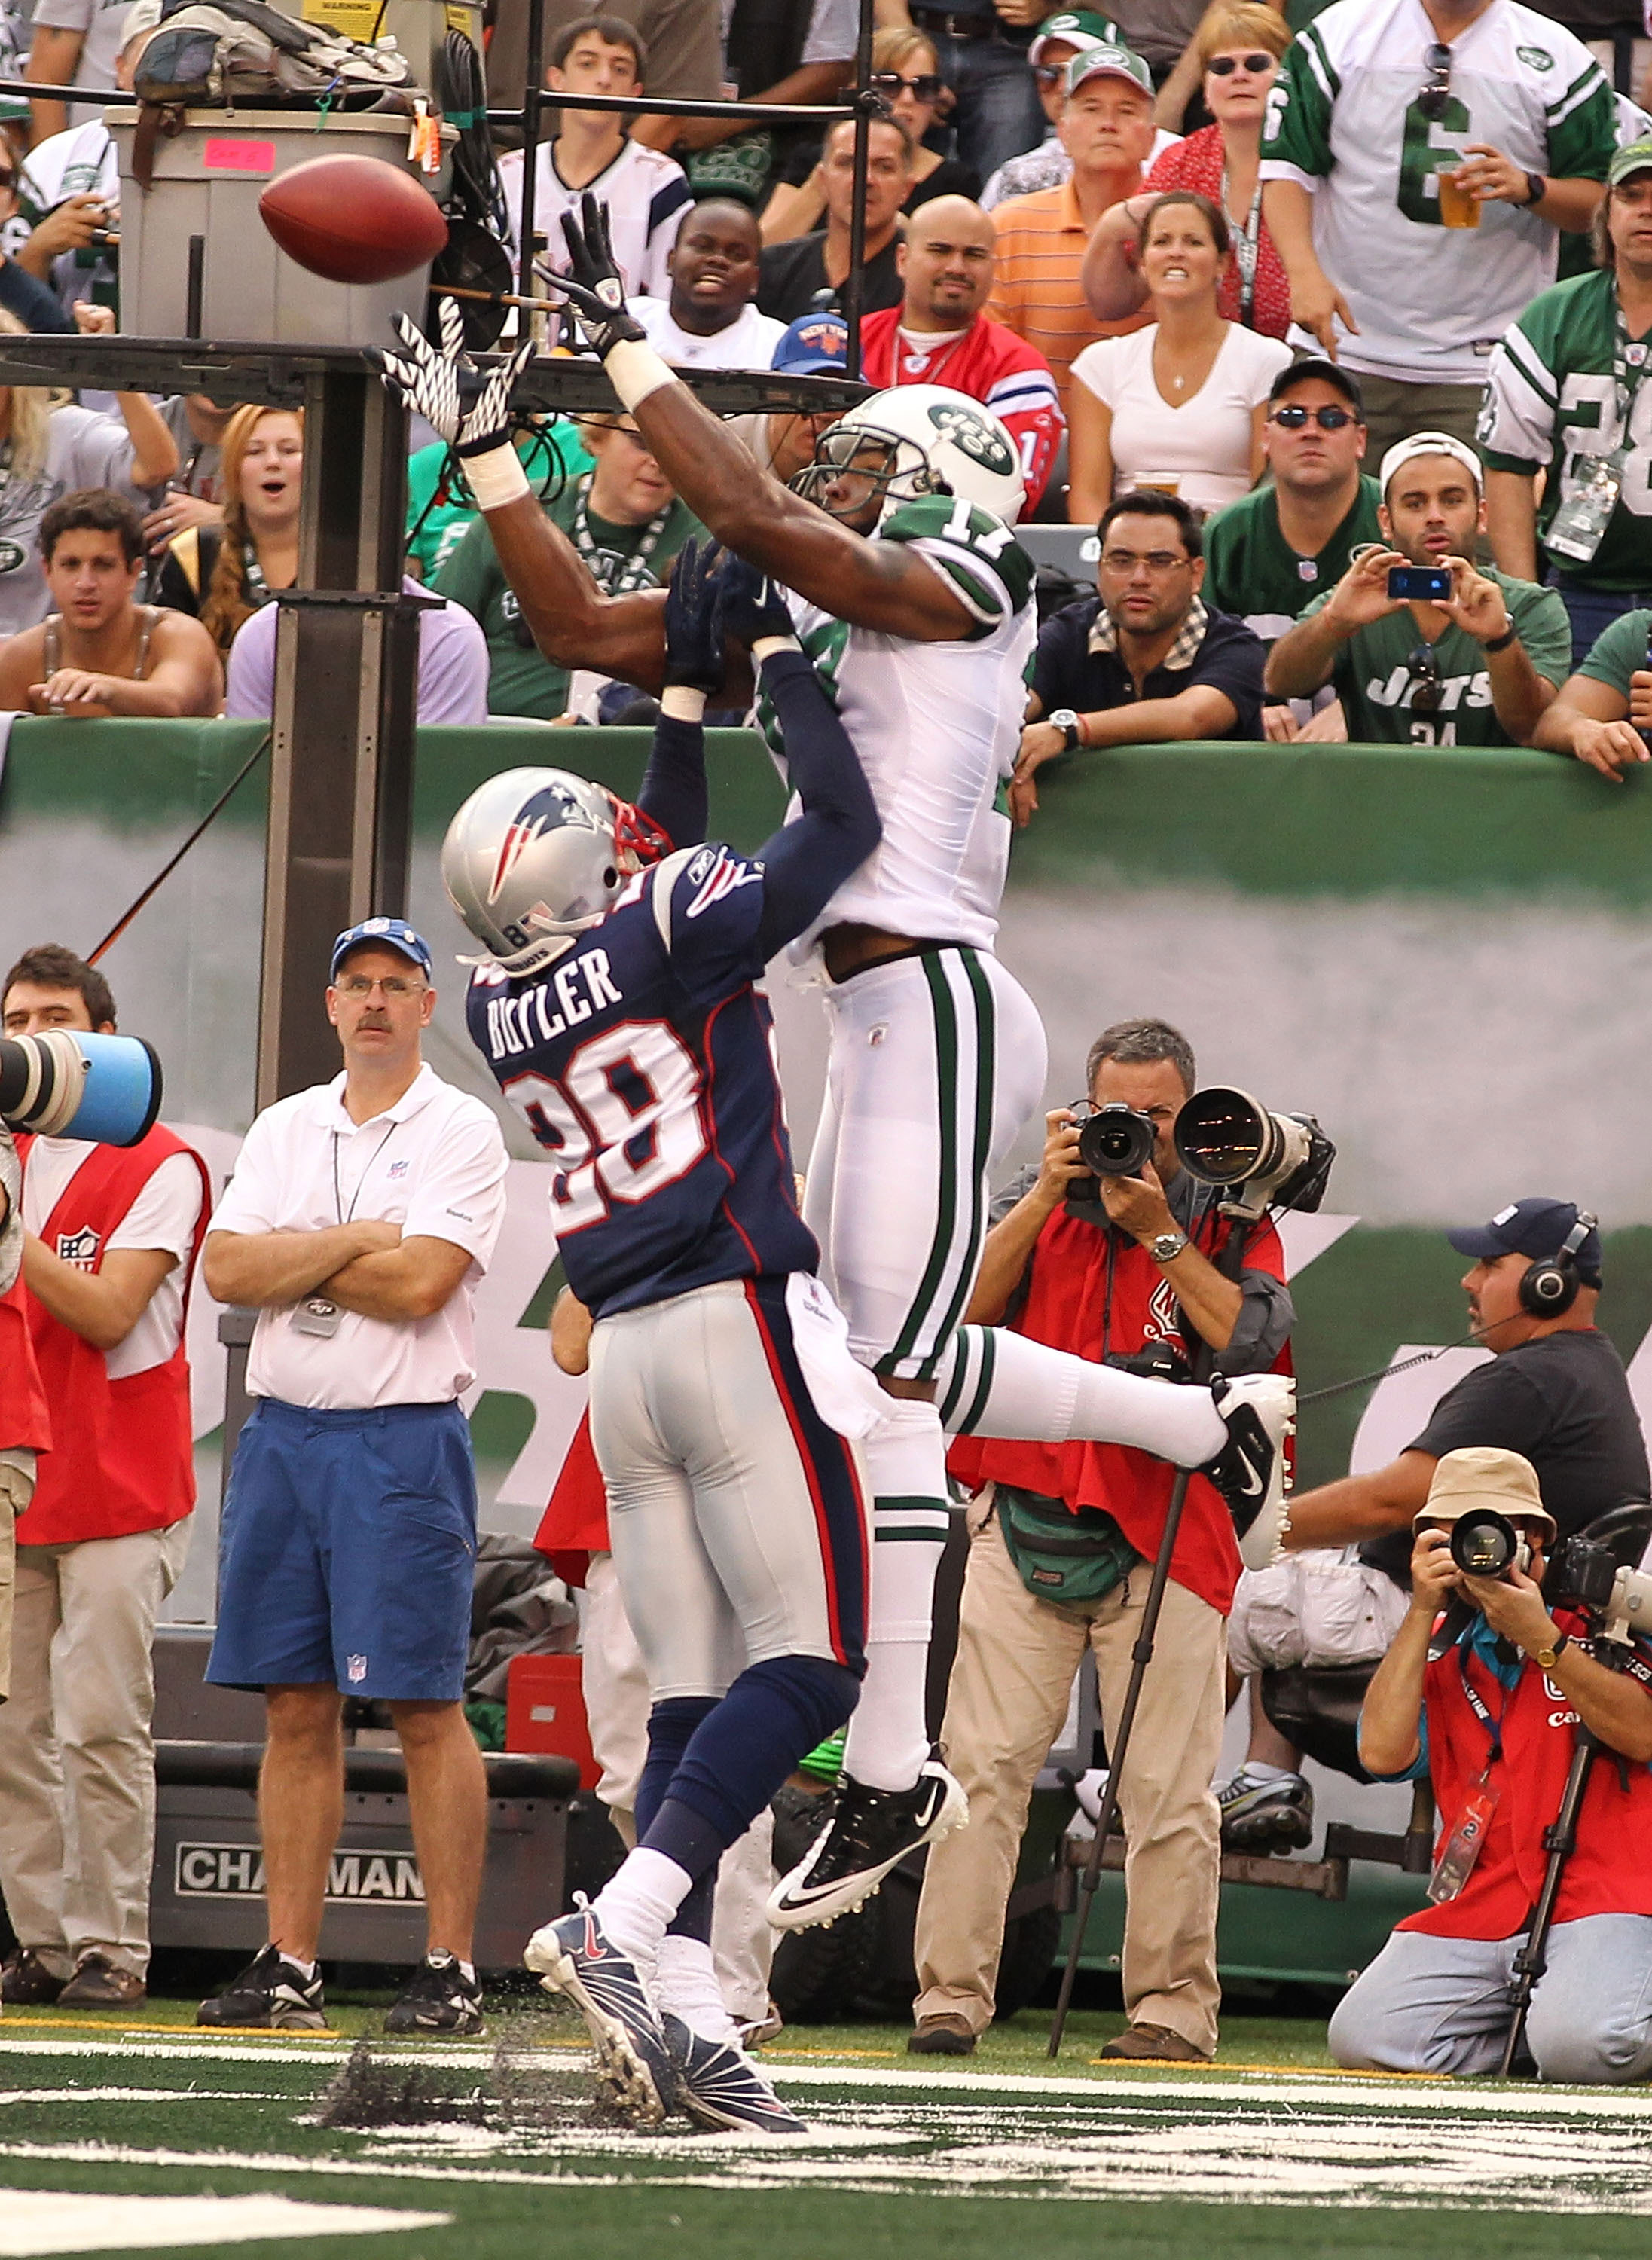 EAST RUTHERFORD, NJ - SEPTEMBER 19:  Braylon Edwards #17 of the New York Jets catches a touchdown against Darius Butler #28 of the New England Patriots during their  game on September 19, 2010 at the New Meadowlands Stadium  in East Rutherford, New Jersey